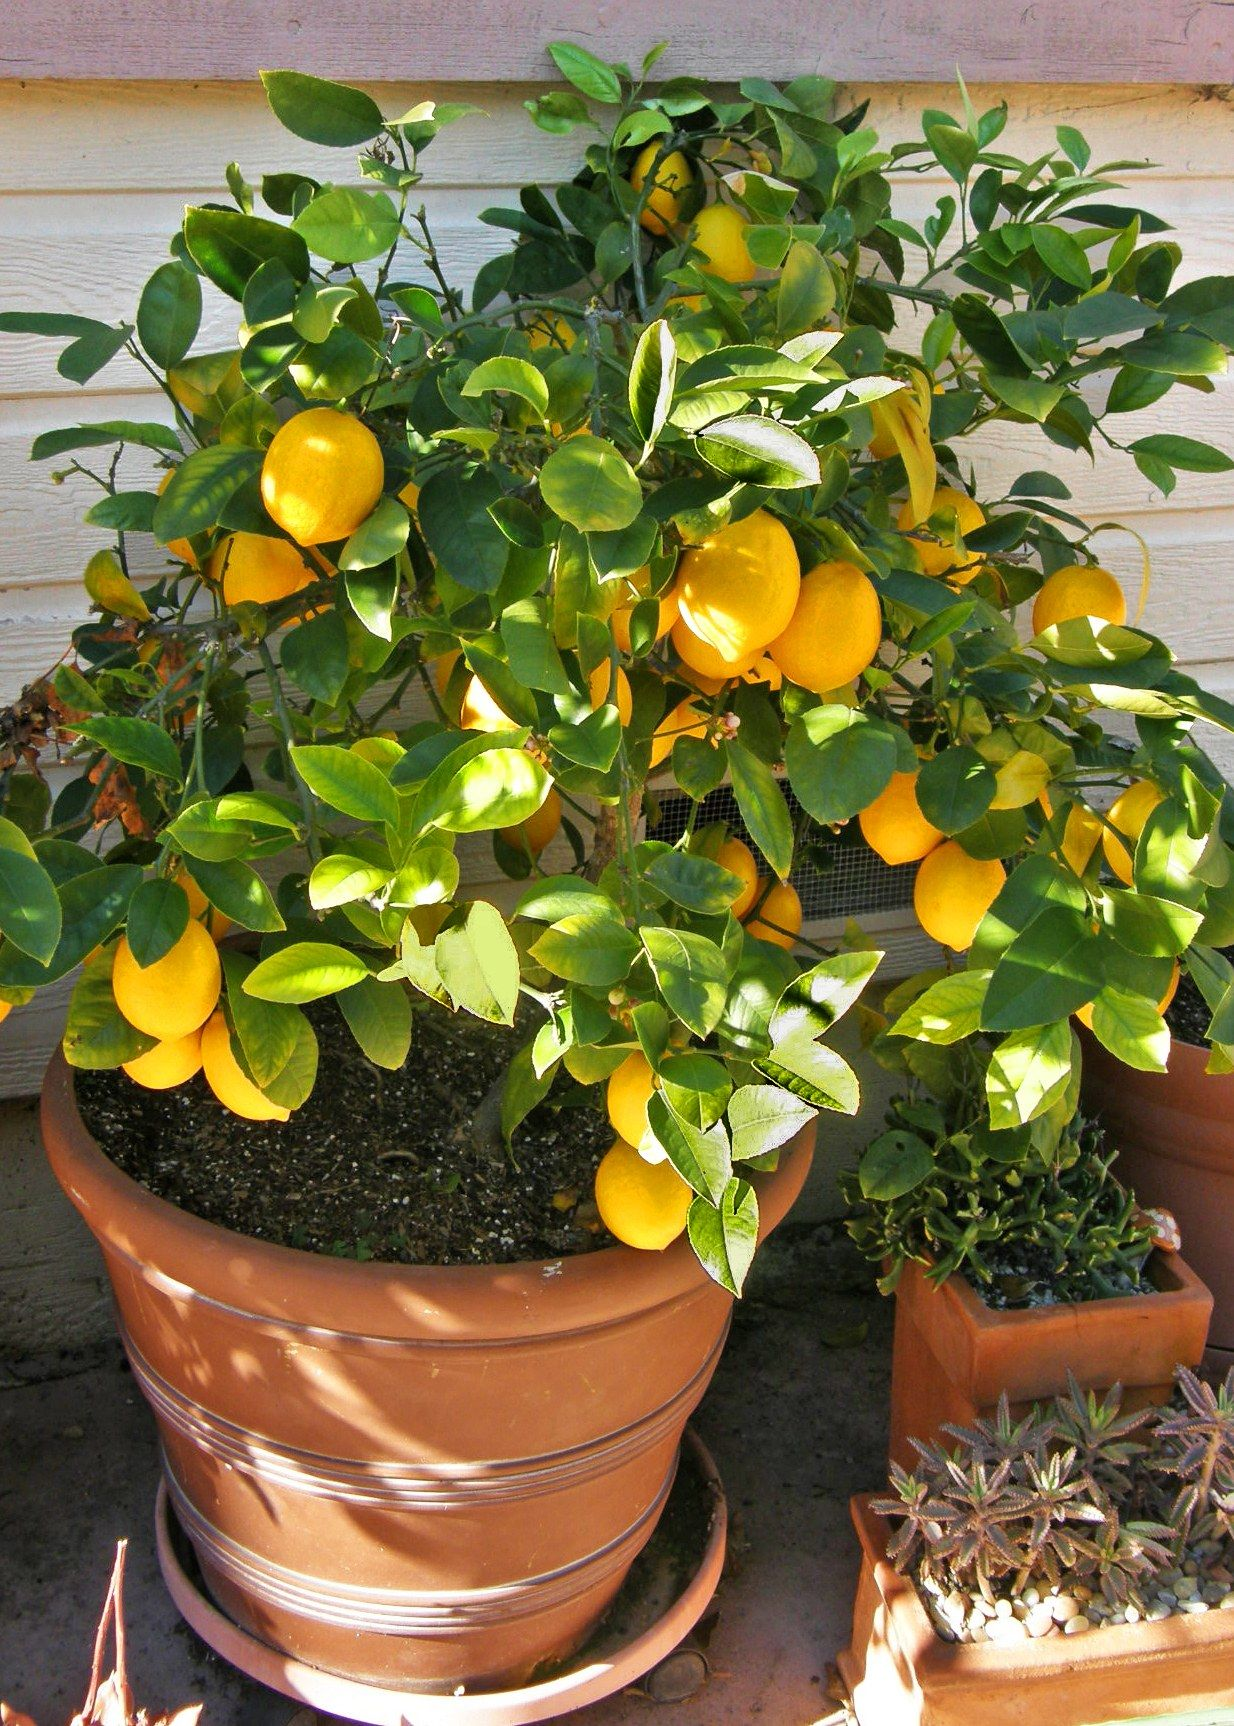 Arbre Fruitier D Intérieur the best indoor house plants and how to buy them | jardinage